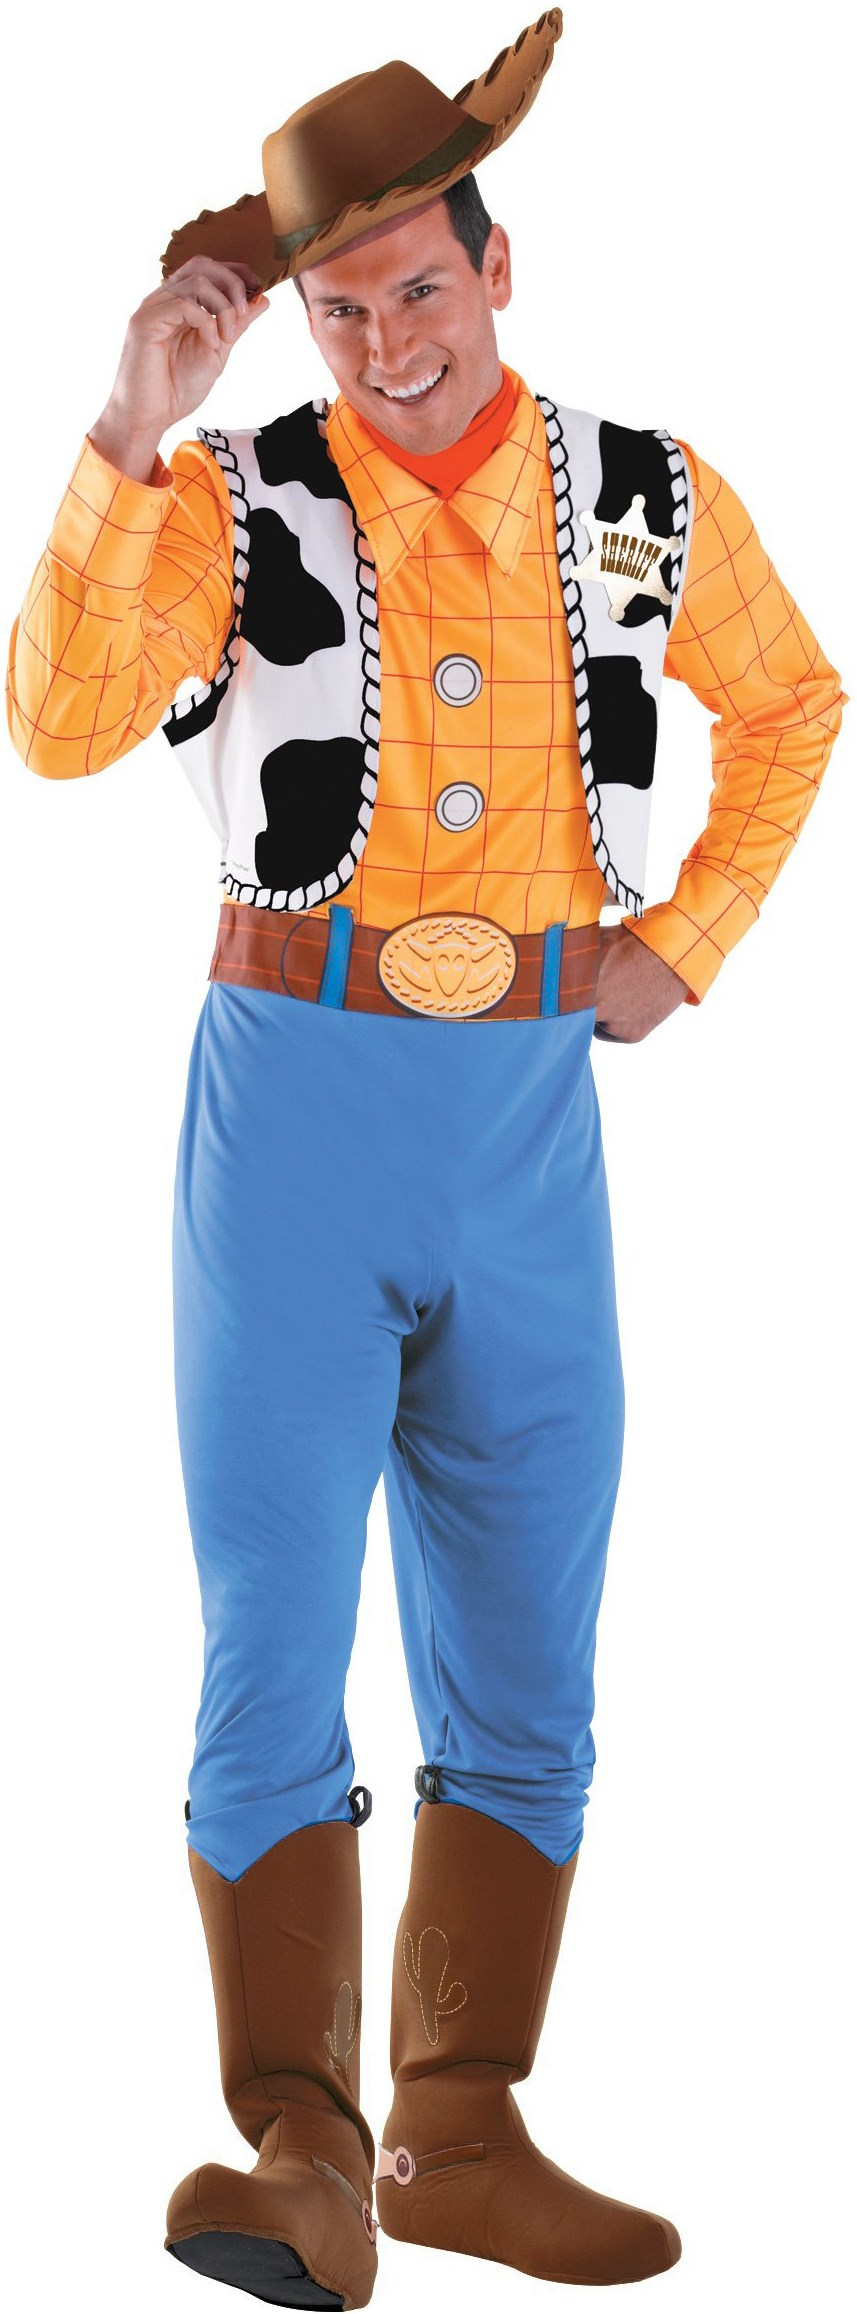 Toy Story - Woody Deluxe Adult Costume X-Large (42-46)